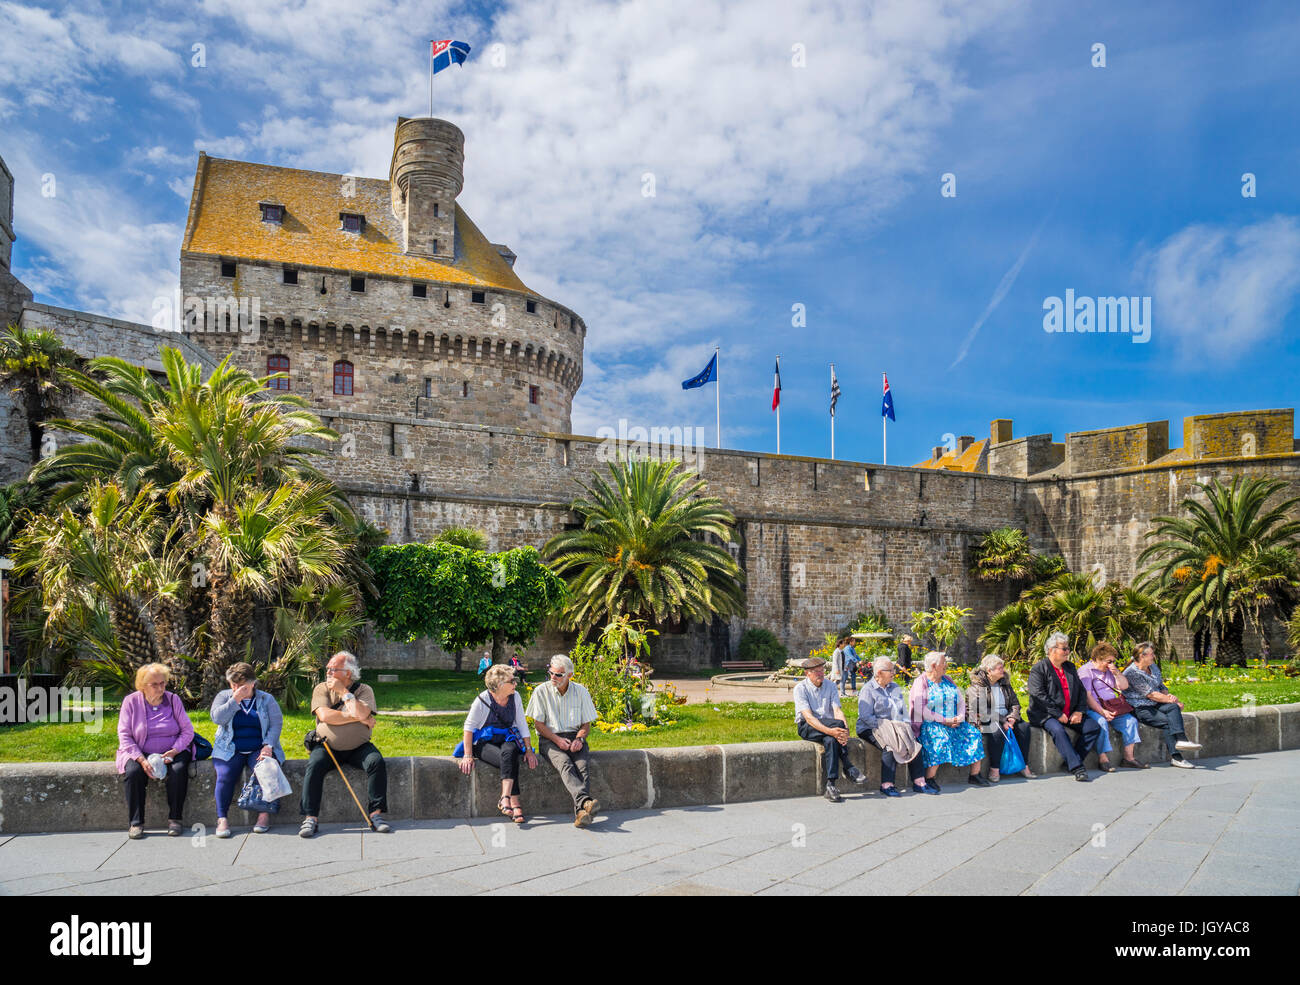 France, Brittany, Saint-Malo, harbourside rampards at Chateau Gaillard - Stock Image